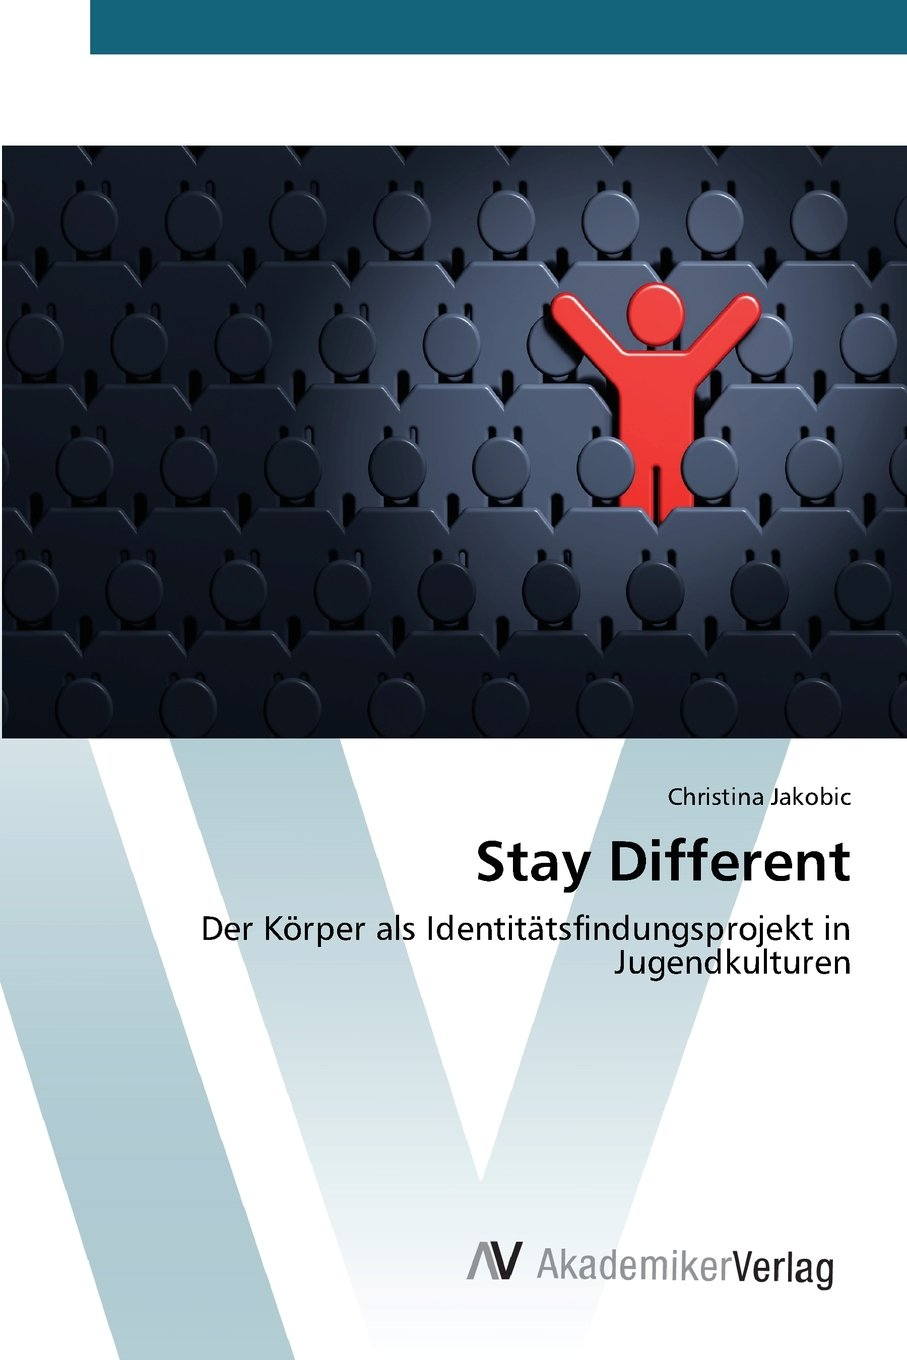 Stay Different: Der Körper als Identitätsfindungsprojekt in Jugendkulturen